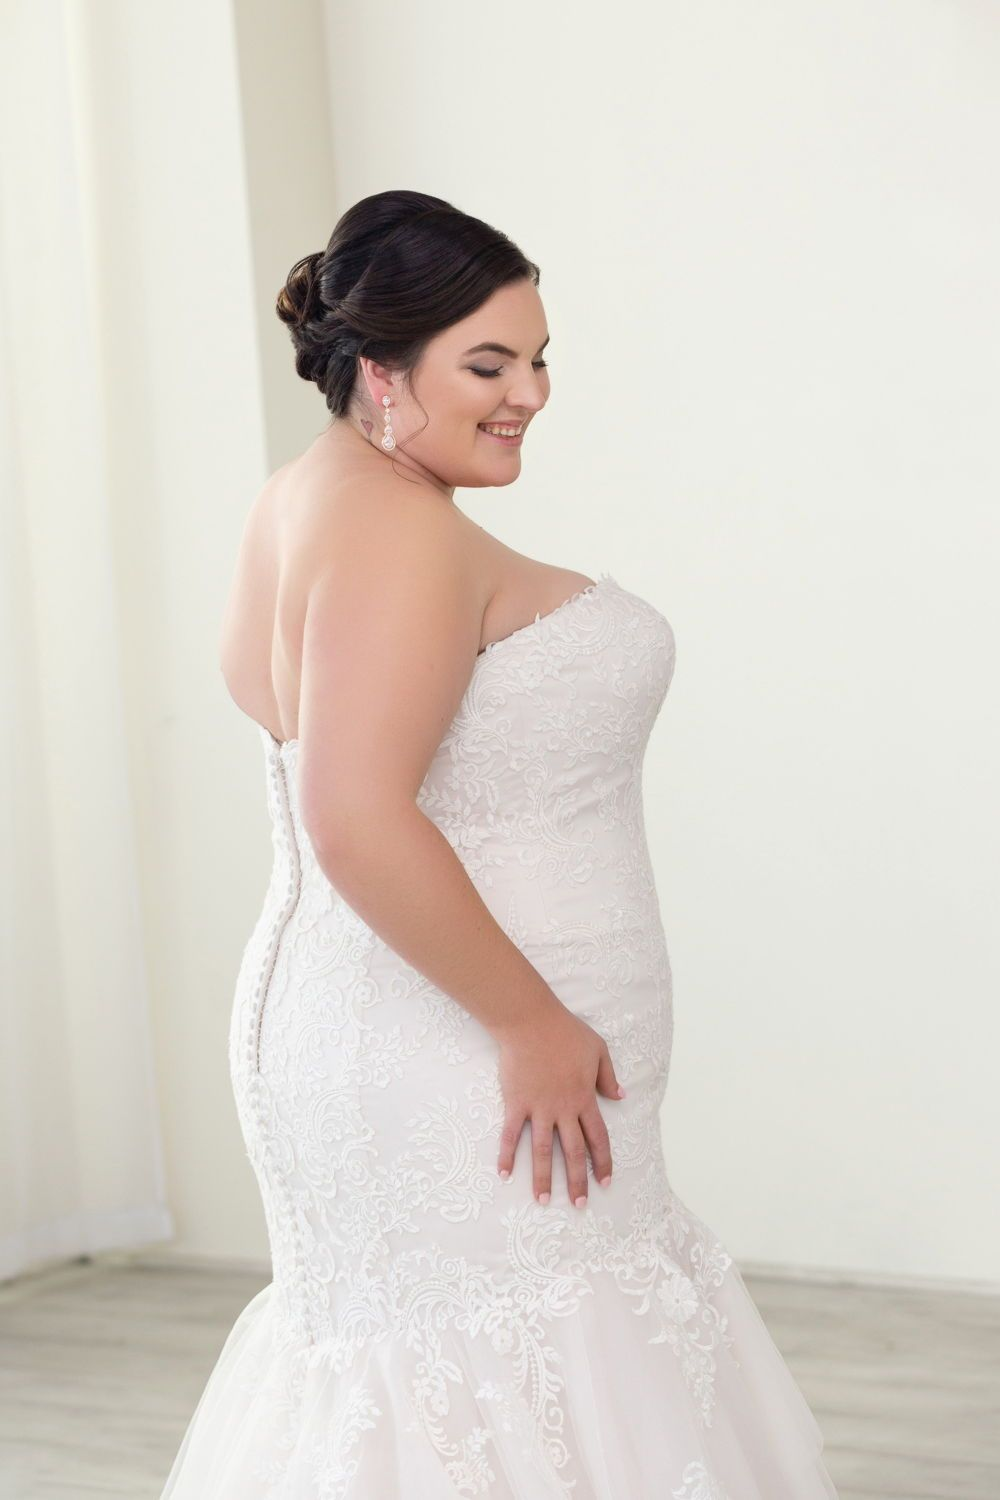 Fitted Wedding Gown Plus Size Wedding Dress Portland Or Bridal Boutique Wedding Dresses Plus Size Wedding Gowns Wedding Dresses Plus Size